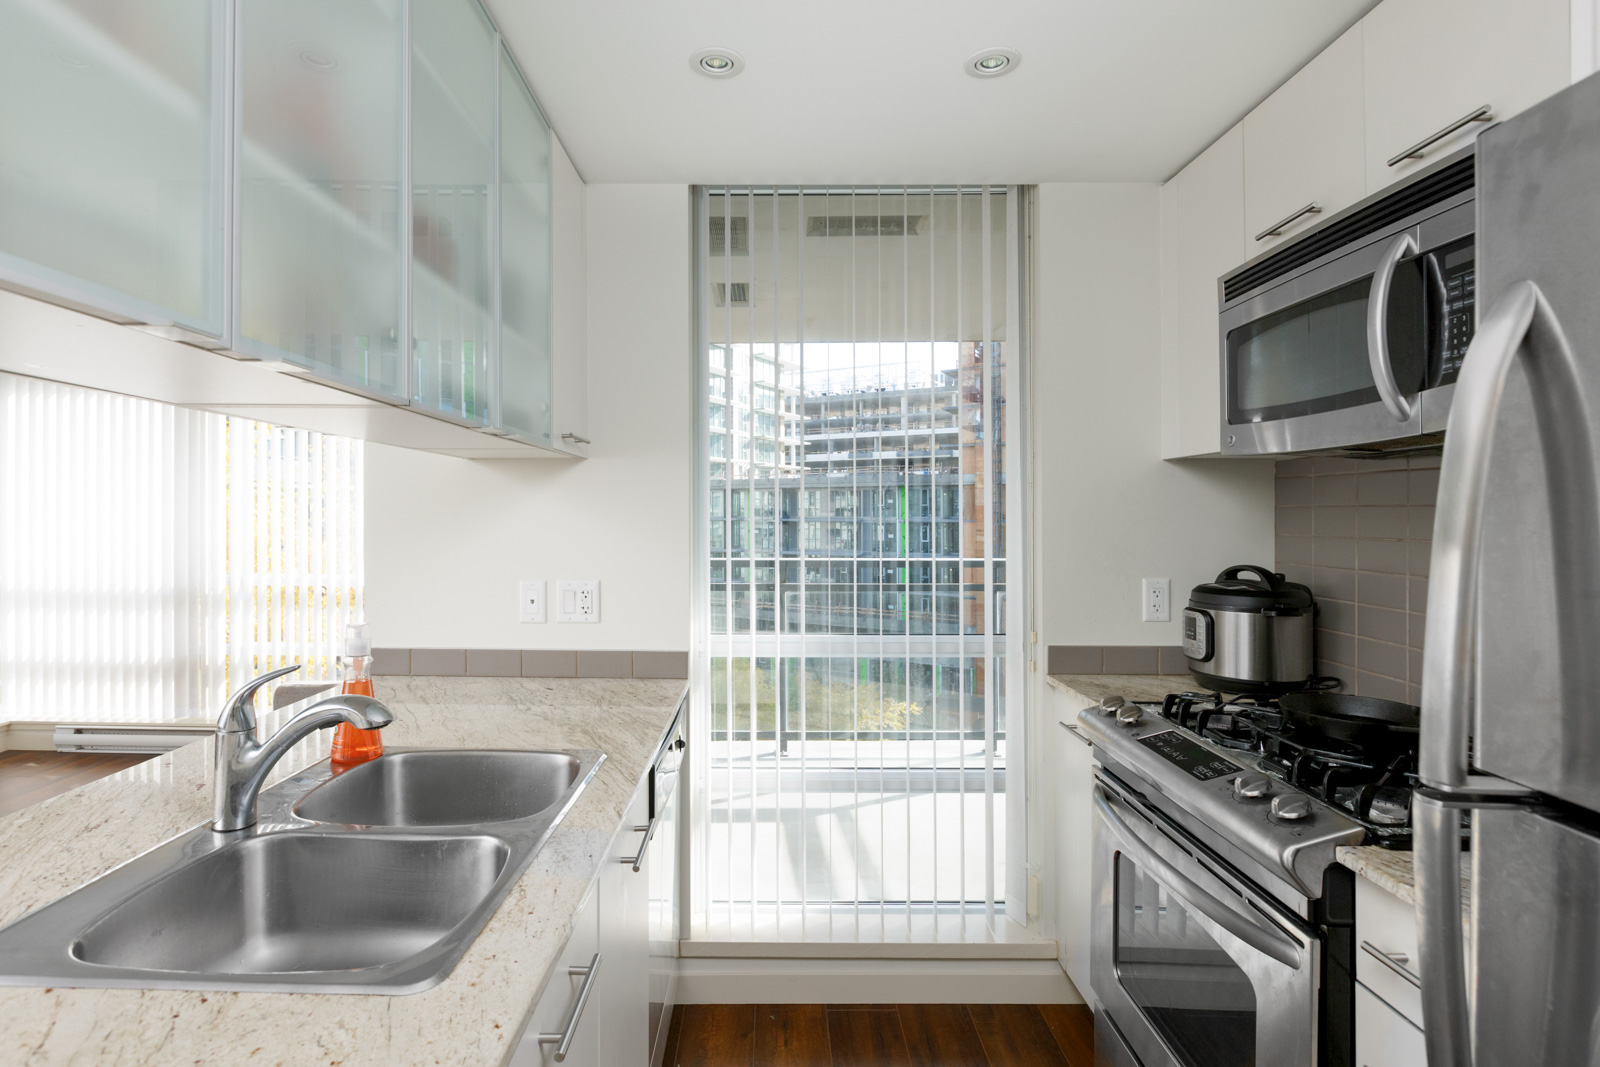 condo kitchen with bright sunlight coming in through tall wall to ceiling window